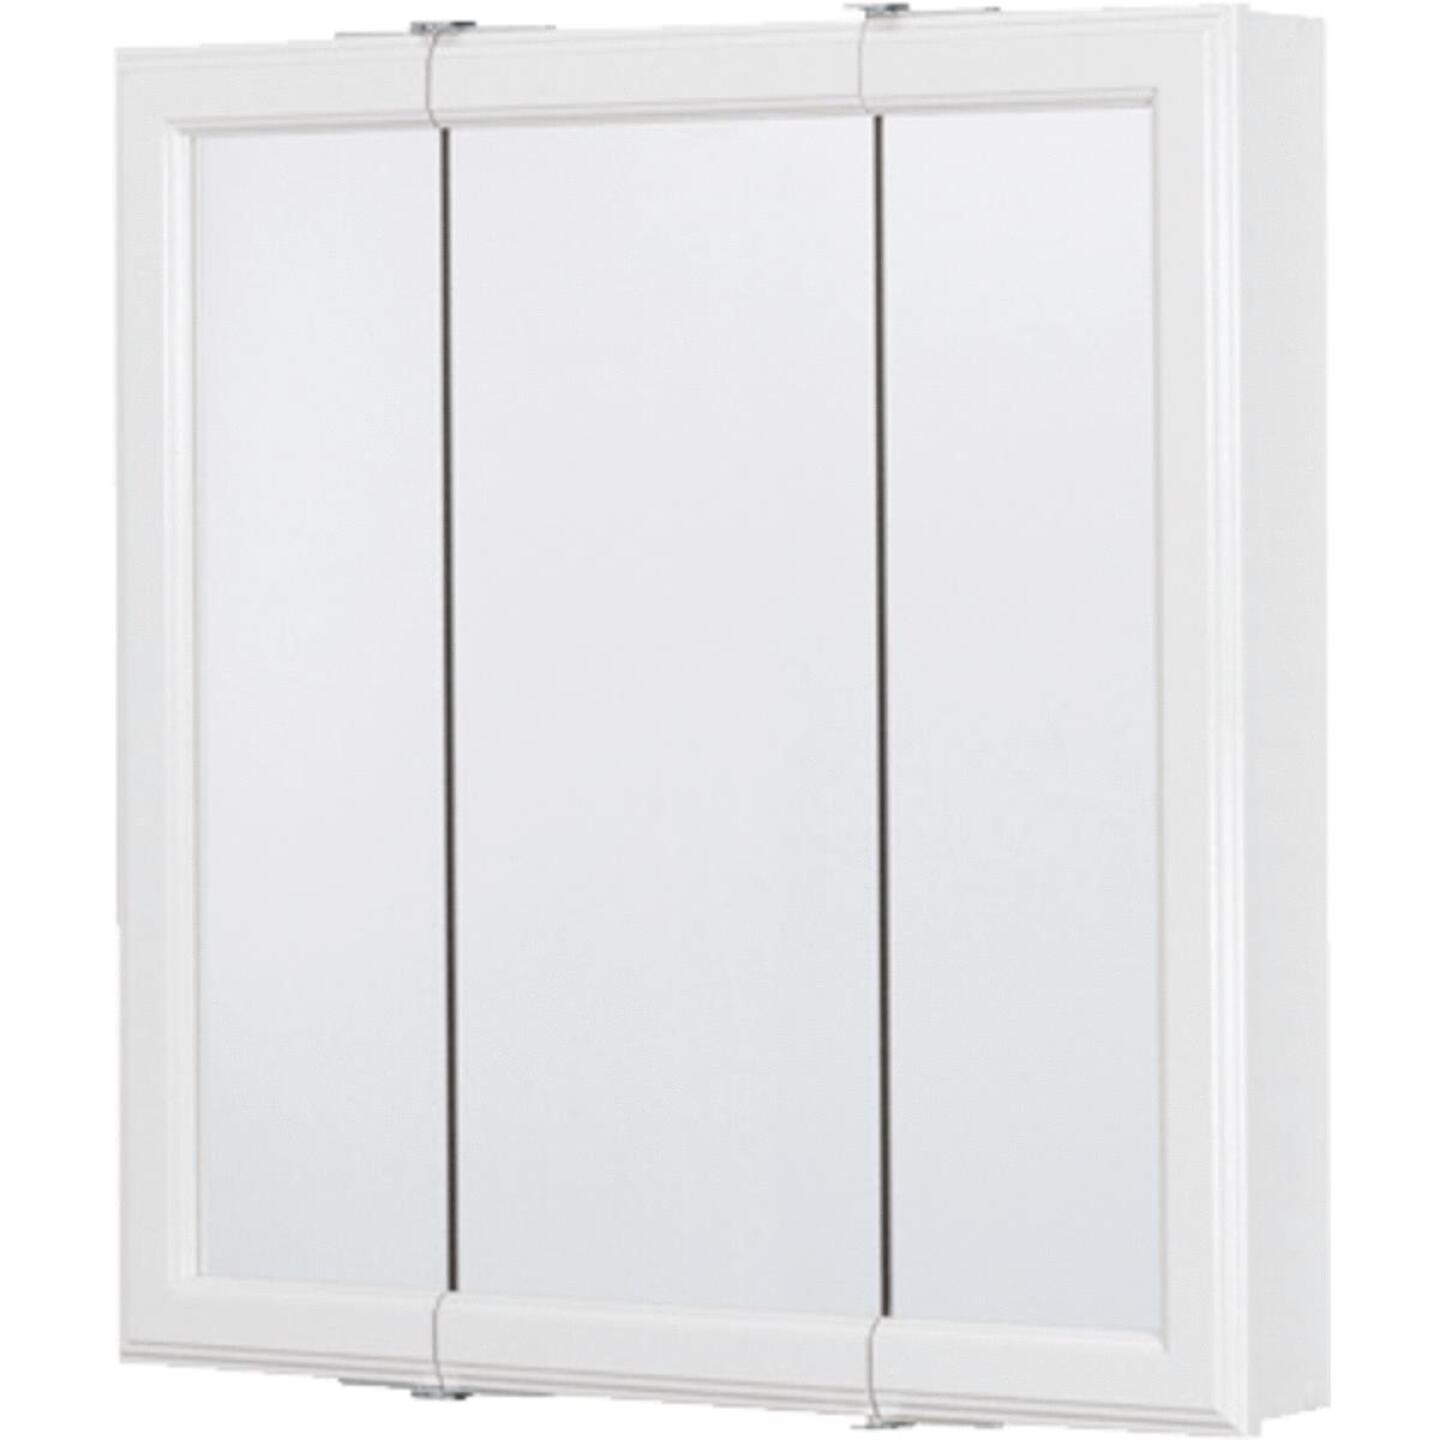 Continental Cabinets White 30 In. W x 28-3/4 In. H x 4-1/2 In. D Tri-View Surface Mount Medicine Cabinet Image 3